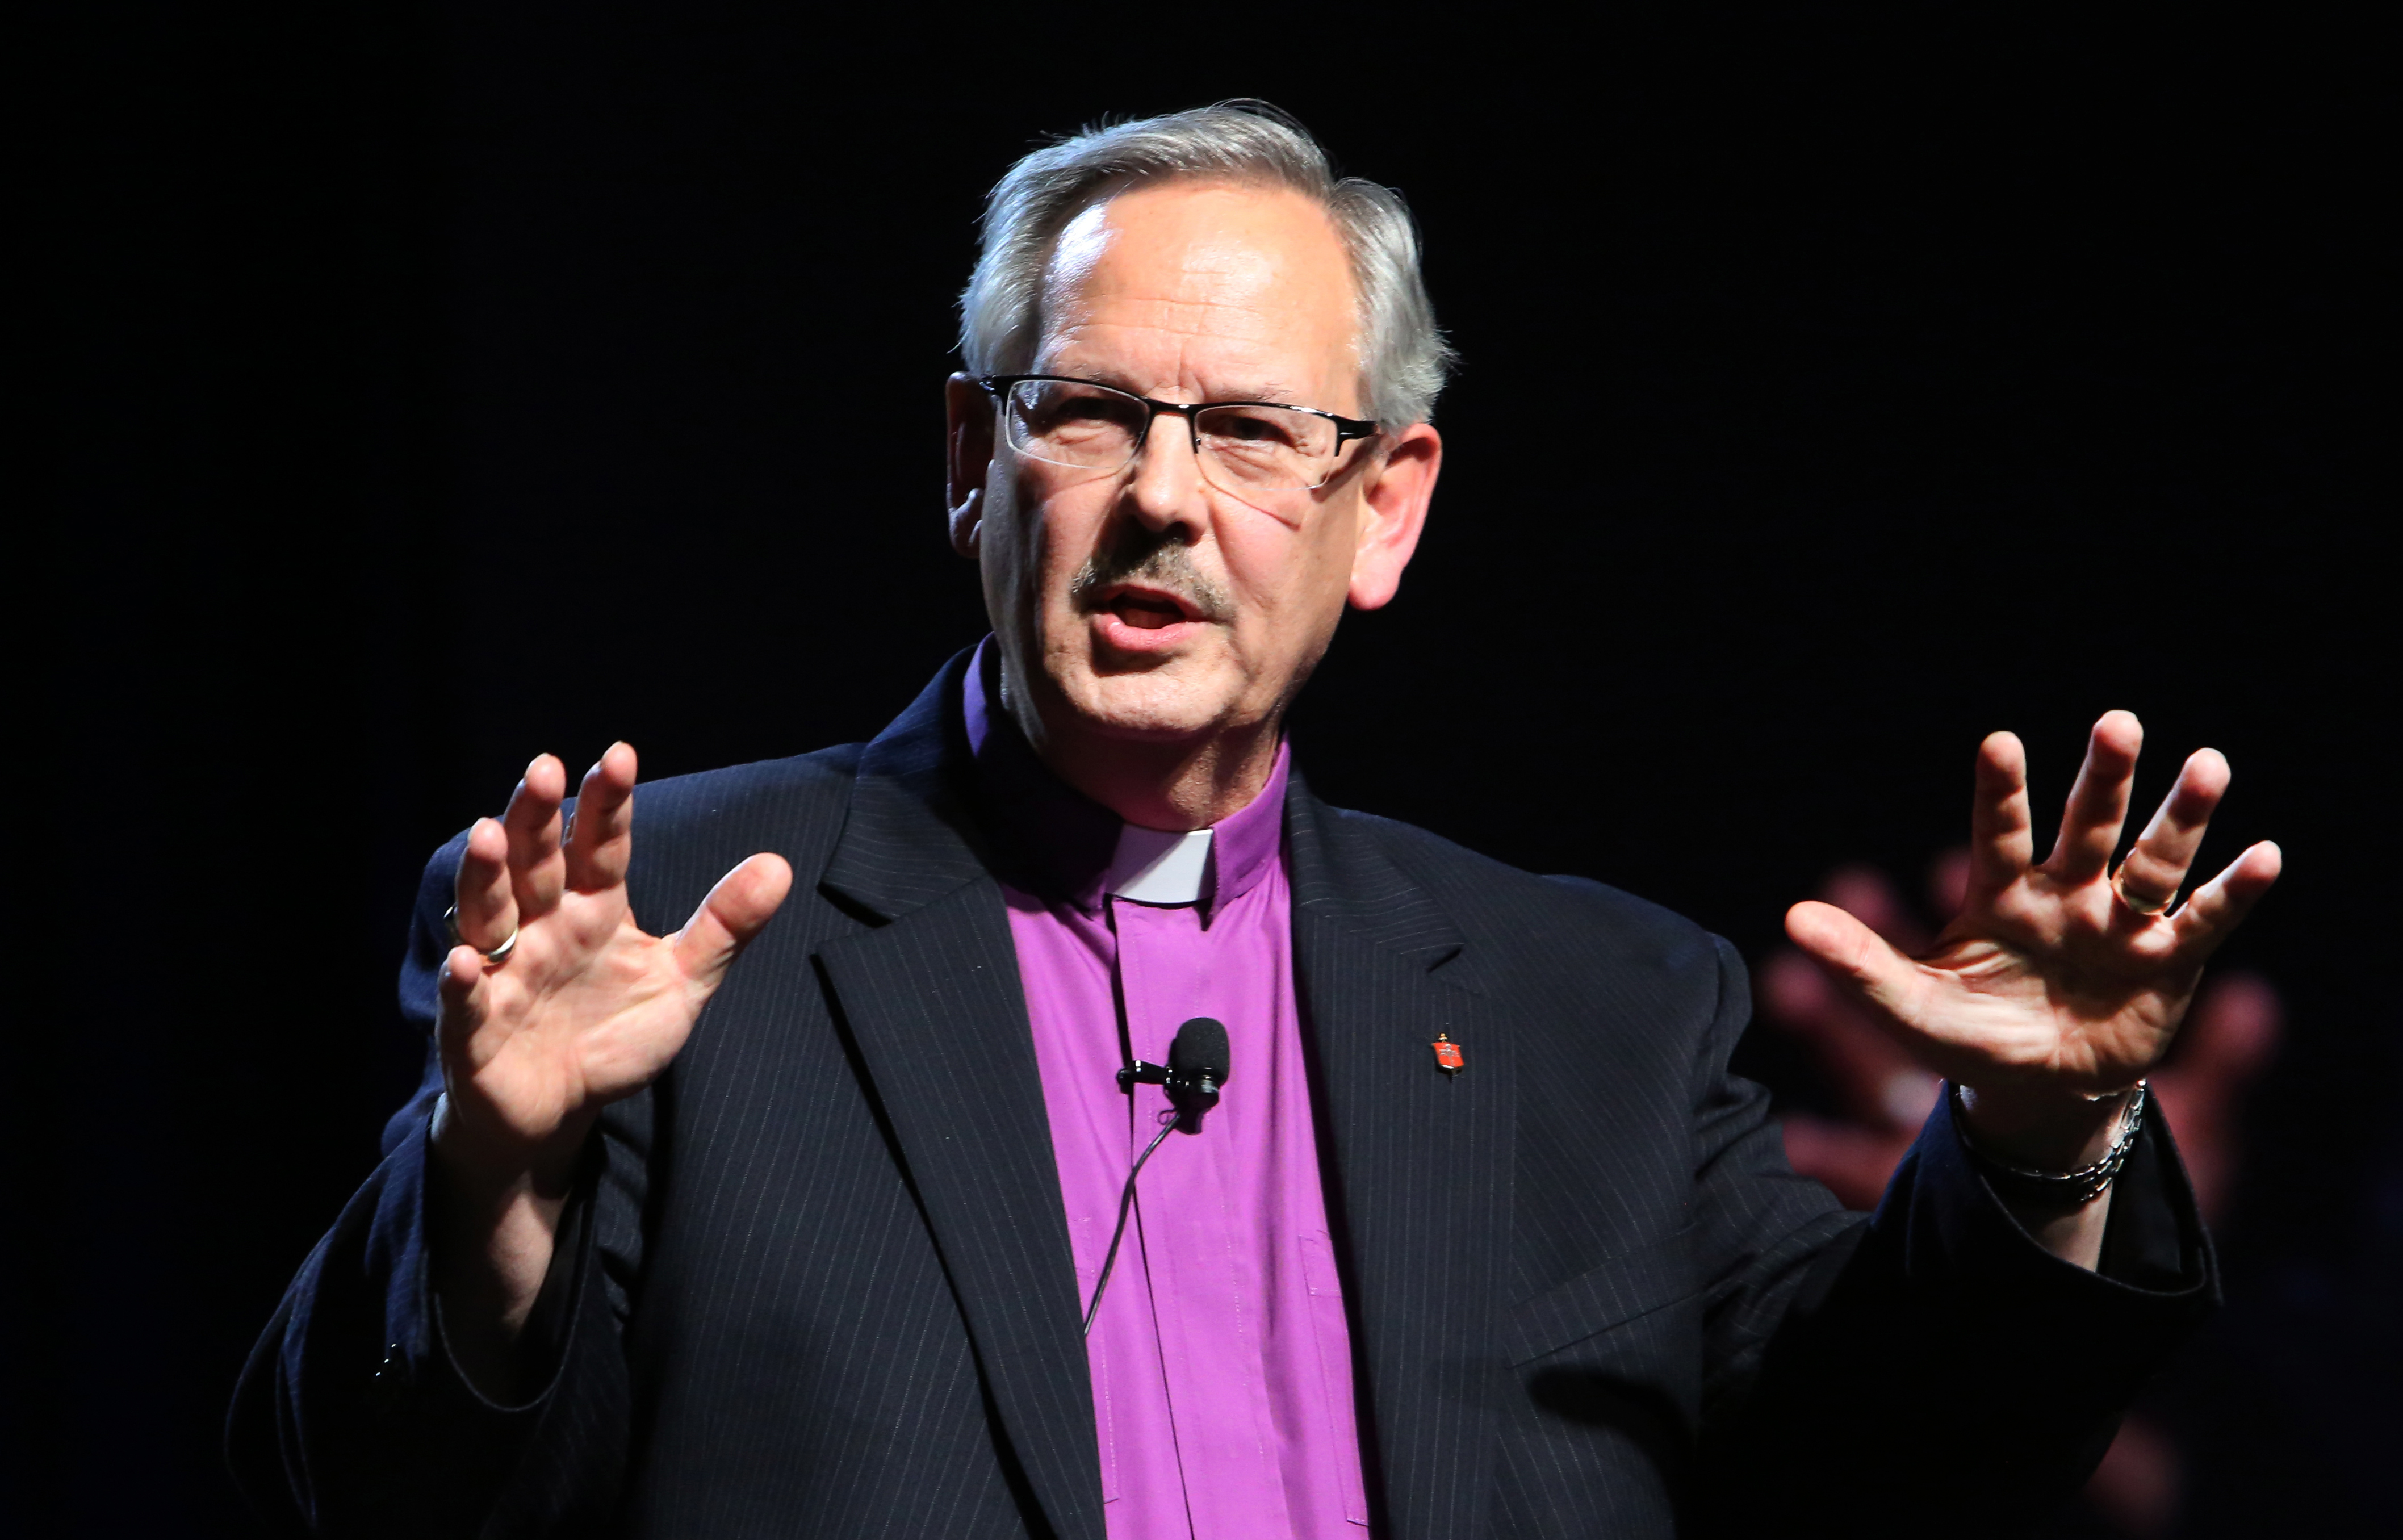 Bishop Bruce R. Ough, president of the United Methodist Council of Bishops, preaches May 20 at the close of the 2016 United Methodist General Conference in Portland, Ore. Photo by Kathleen Barry, UMNS